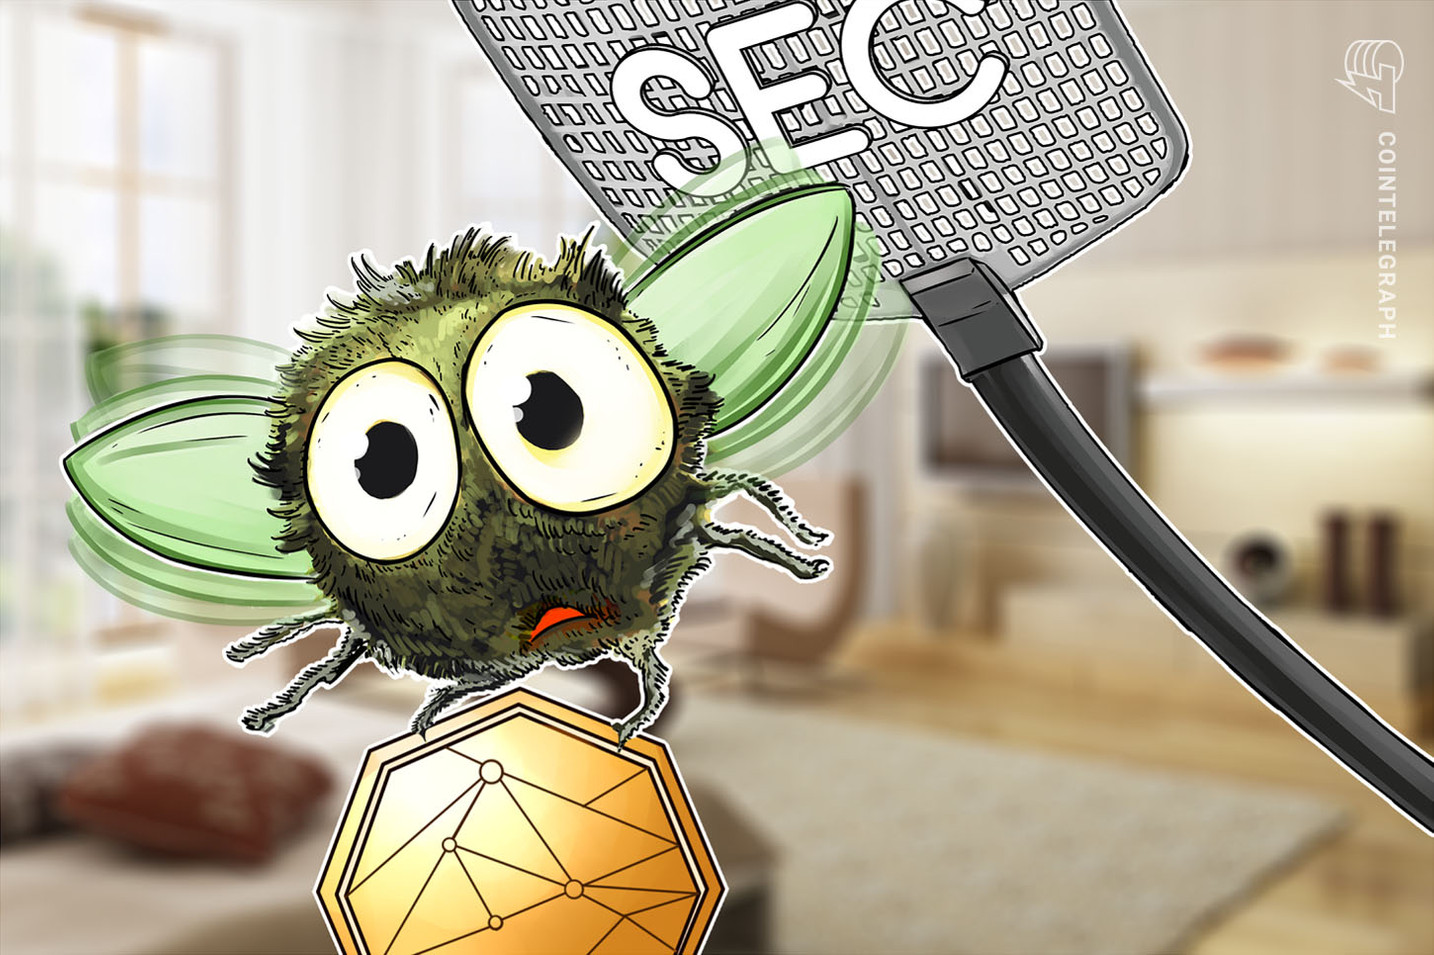 US SEC Adds Fraud to List of Charges Against 'Crypto' Firm Longfin